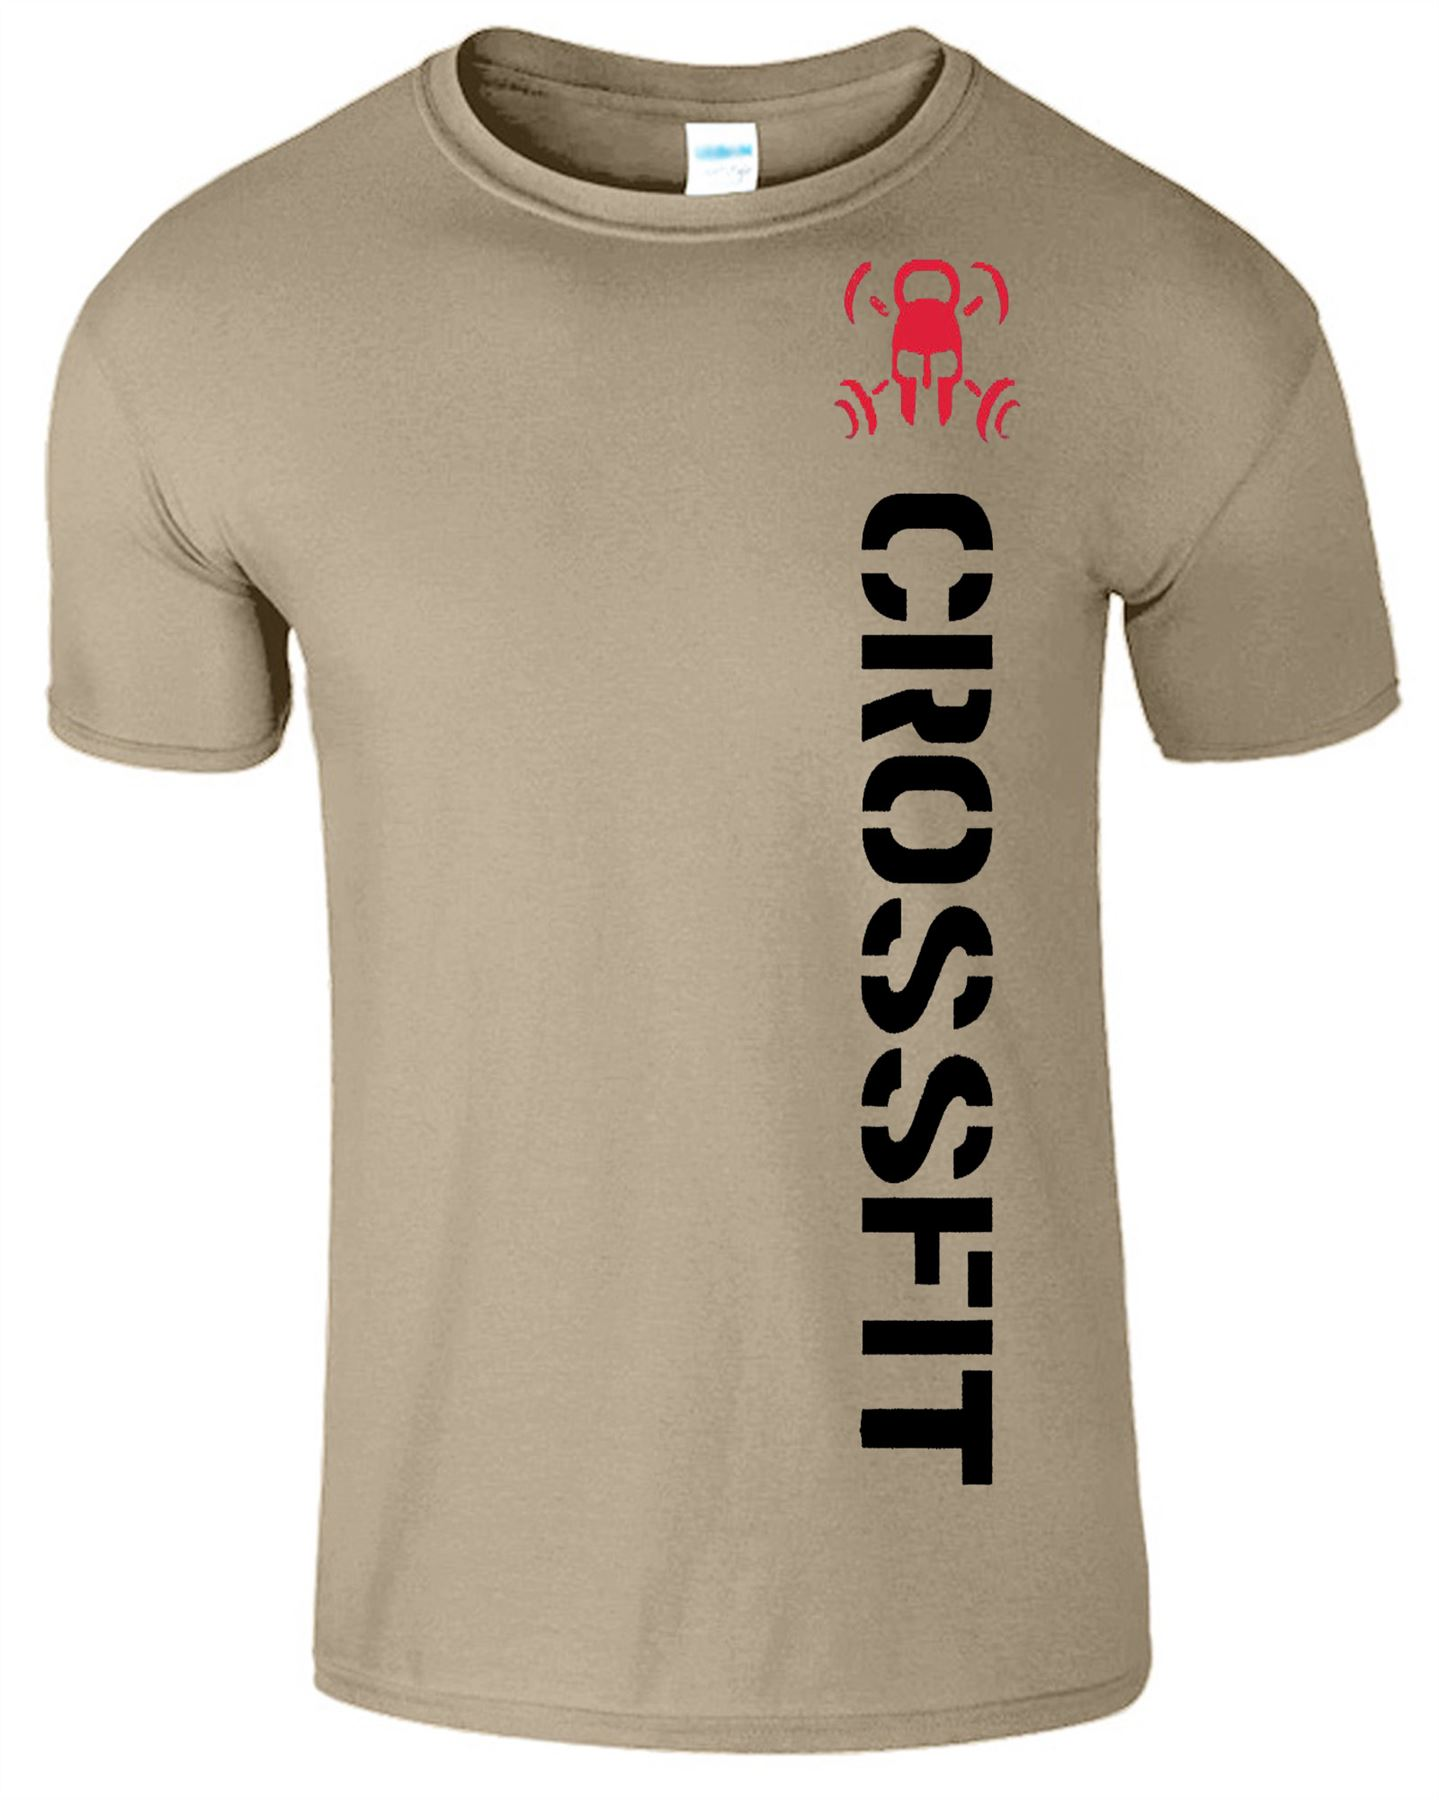 Gym crossfit mens t shirt bodybuilding functional gym wear for Fitness shirts for men